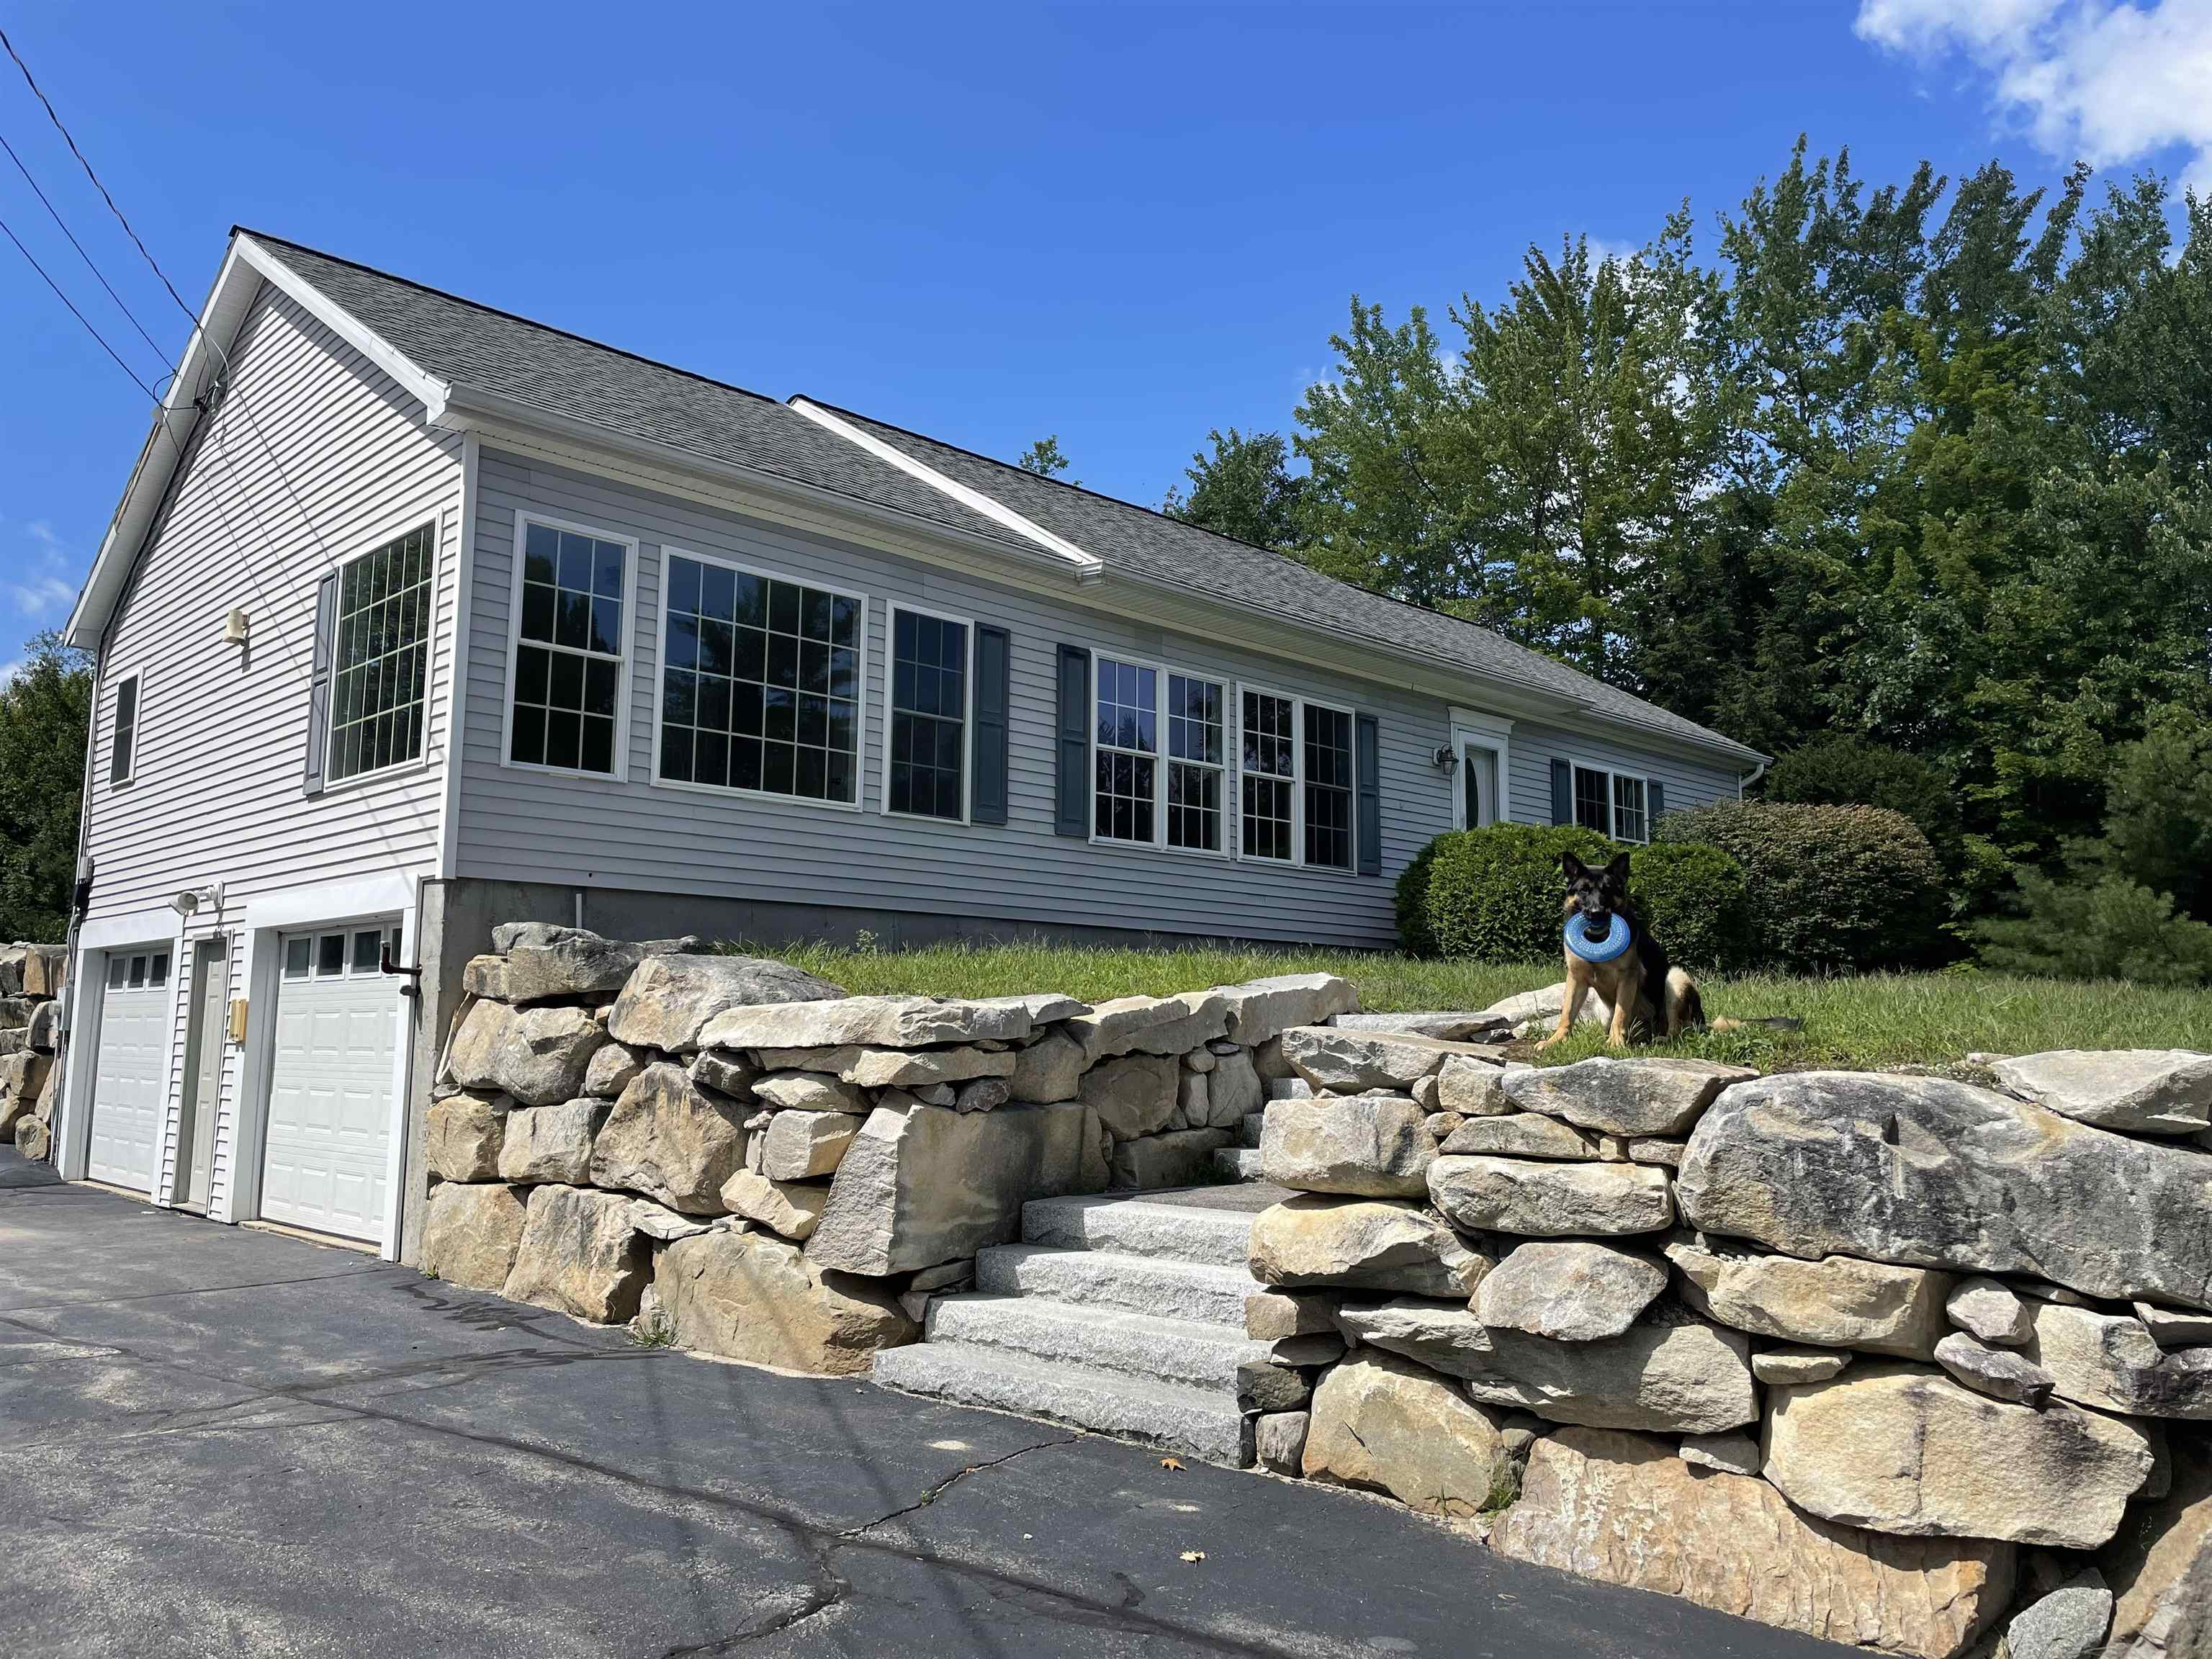 VILLAGE OF OSSIPEE VILLAGE NH IN TOWN OF OSSIPEE NHHomes for sale